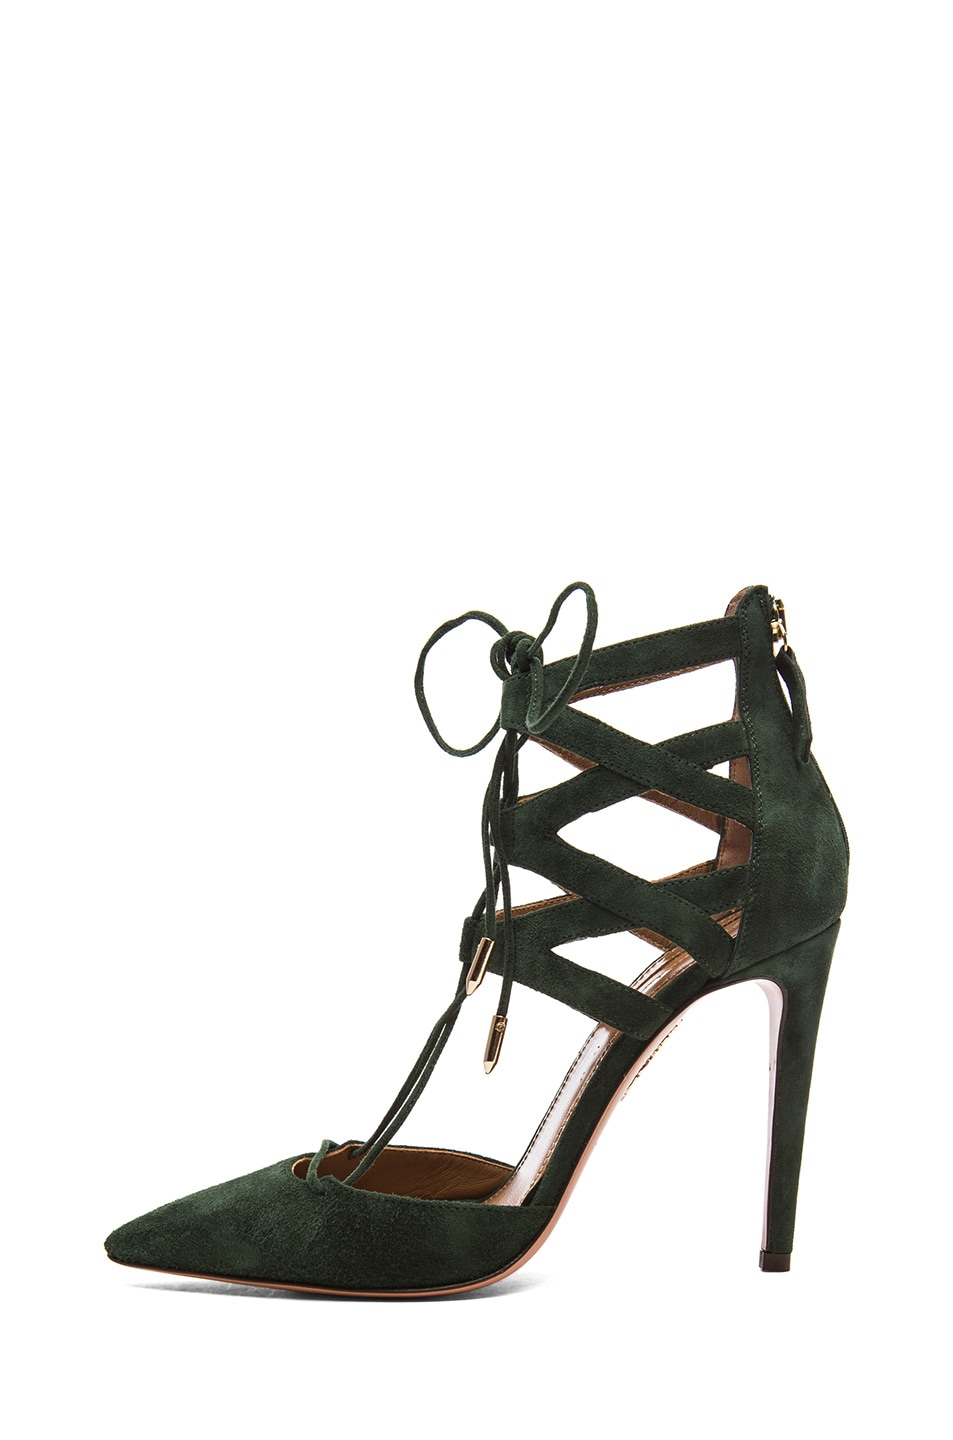 Image 1 of Aquazzura Belgravia Suede Lace Up Pumps in Forest Green